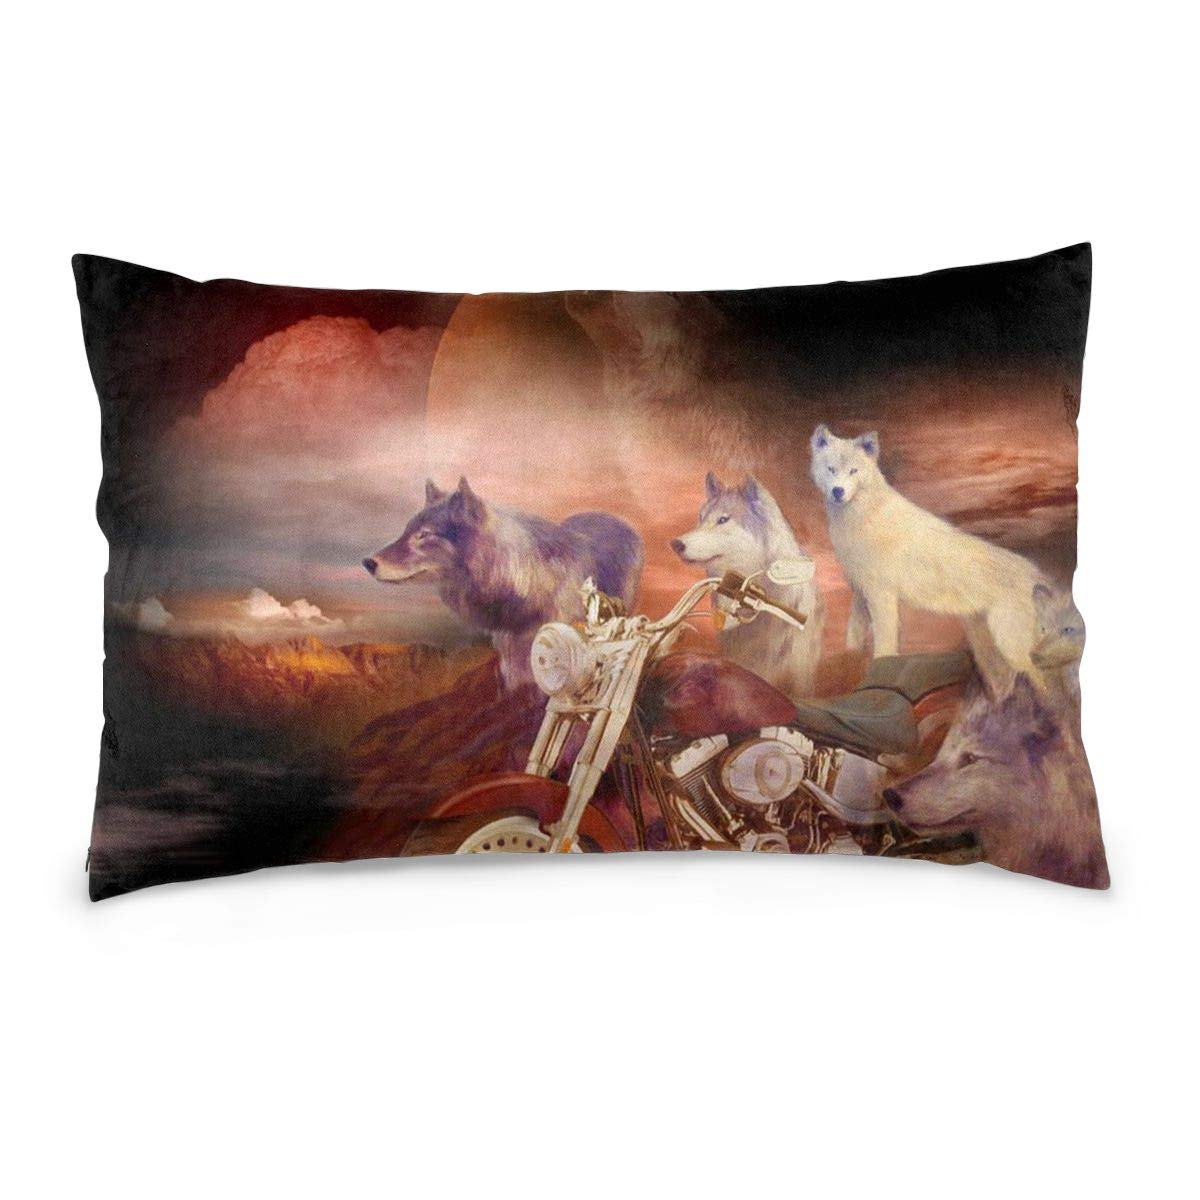 Private Bath Customiz Legend of Wolf Mountain Funny Motorcycle Home Decor Throw Pillowcase for Sofa Cushion Cover Decorative Pillow Case Covers 16 x 24 inch